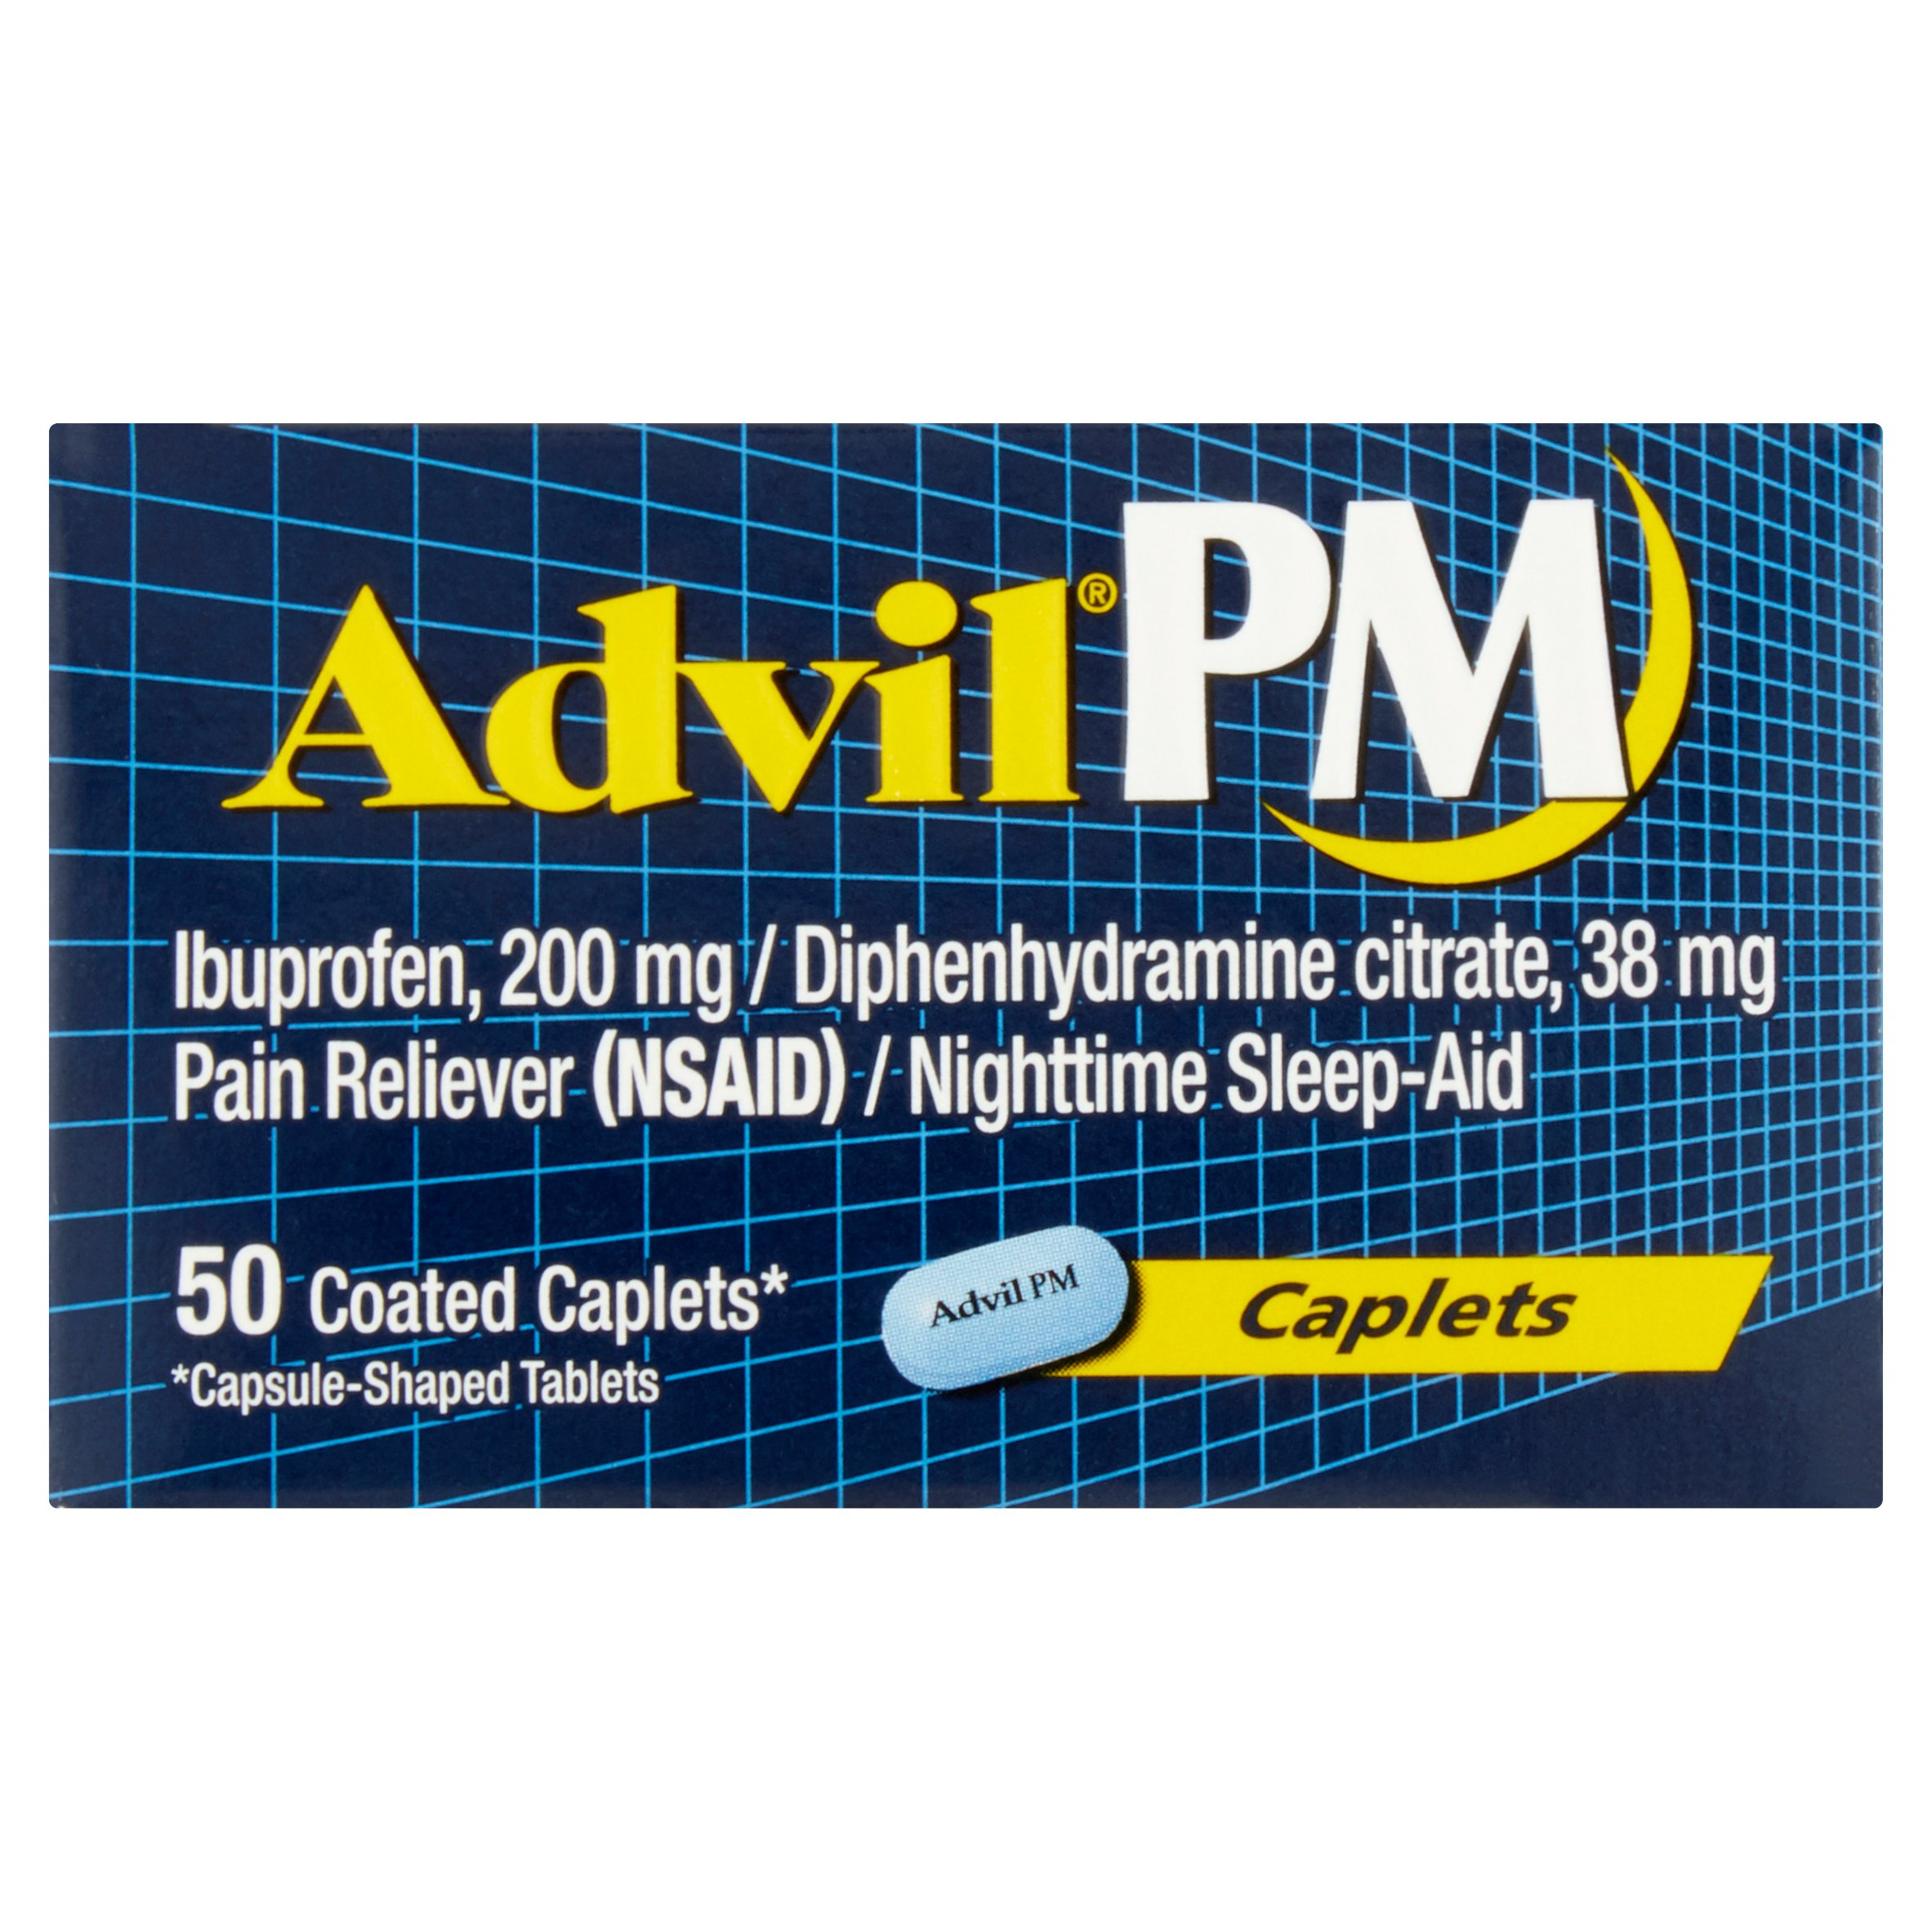 Advil PM (50 Count) Pain Reliever / Nighttime Sleep Aid Caplet, 200mg Ibuprofen, 38mg Diphenhydramine